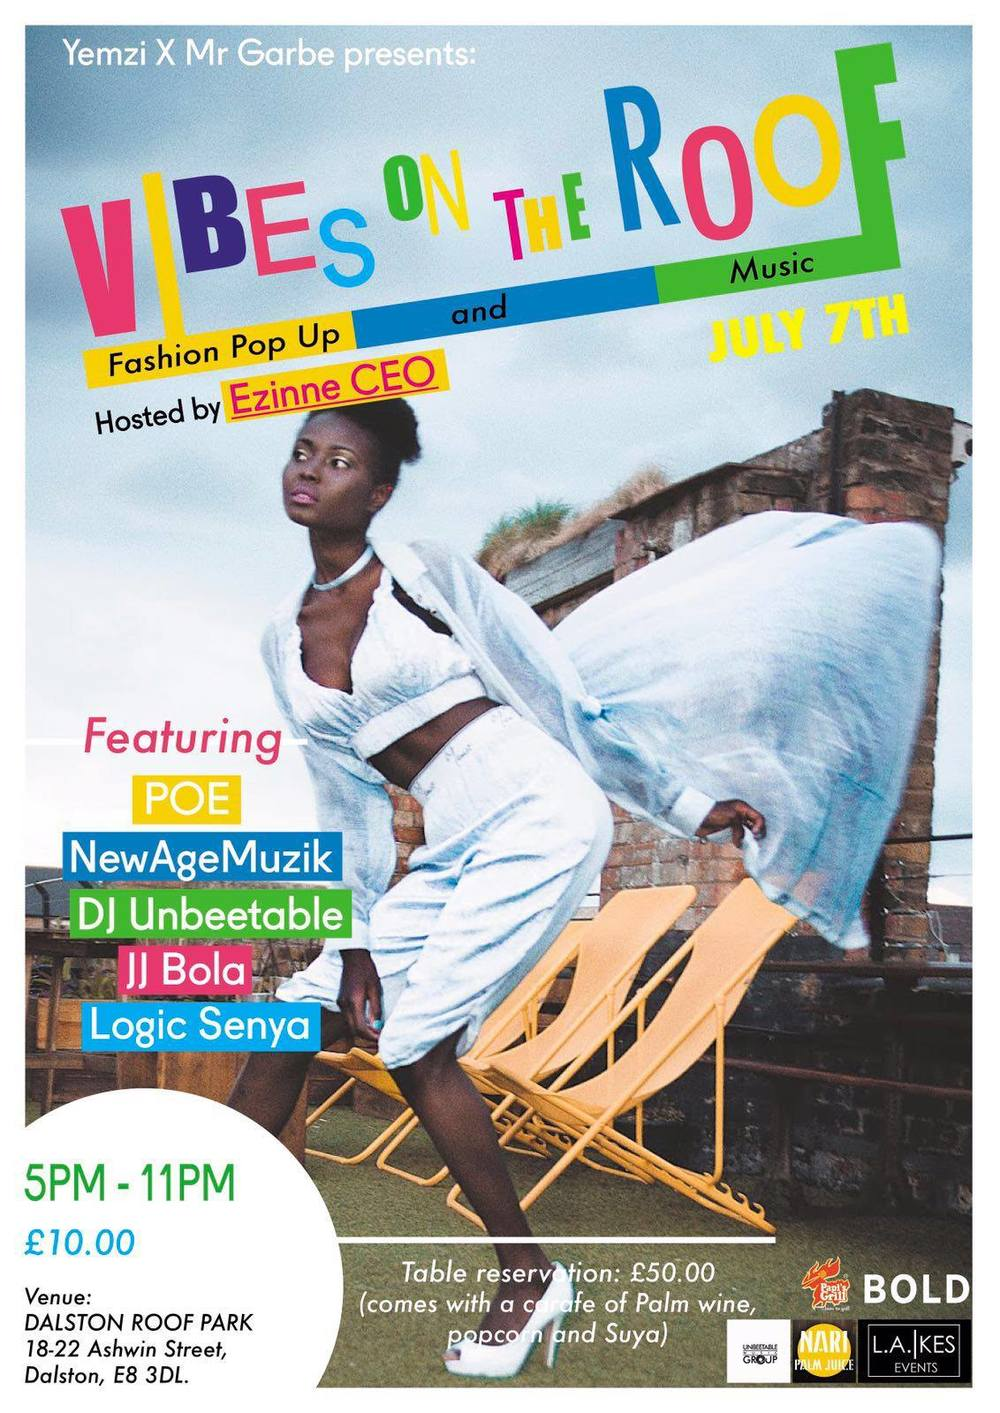 "Vibes On The Roof  - East London's Cultural Secret  Thursday 7th July brings an exciting Afropolitan music and fashion pop up.    Vibes on The Roof #VOTR is set to be an event that provides the perfect fusion between urban East London and the cosmopolitan energy found across African cities - the event curators like to refer to this as ""Afropolitan"".   FASHION   The evening will feature pieces from Dalston based emerging British-Nigerian fashion designer  Yemzi,  with the oppurtunity to make purches. Also a collection from  Mr Garbe  - a clothing brand inspired by Africa's rich cultural history as well as its dynamic future and the diaspora.   MUSIC & SPOKEN WORD   VOTR presents an amazing roster of musical and spoken word talent.   POE   The Lagos raised rapper has intellectual punchlines and witty wordplay in his music that will entertain spectators with his new hip hop sound.   JJ Bola   Kinshasa born, London raised writer, poet and educator enlightening the crowd with thoughtful spoken word.   NewAgeMuzik   This new London raised fresh talent group are set to get the crowd pumped with their underground but hip music, the group are rapidly growing a strong following and set to make it big in the coming months.   DJ Unbeetable  and  Logic Senya  will be spinning tunes throughout the night to keep guests entertained.   FOOD AND DRINK   There will be a cash bar available throughout the night with  Papi's Grill  serving food for the duration on the event.  Nari Palm Juice  will kindly be offering some samples of their new flavours.  The event will take place at Dalston Roof Park, 18 Ashwin St, London E8 3DL nestled in between Hackney's Terraced Homes and framed by the London's famous cityscape  from 5pm - 11pm with   last entry at 10.30pm.     A limited number of tickets are now available to purchase  h  ere  ."